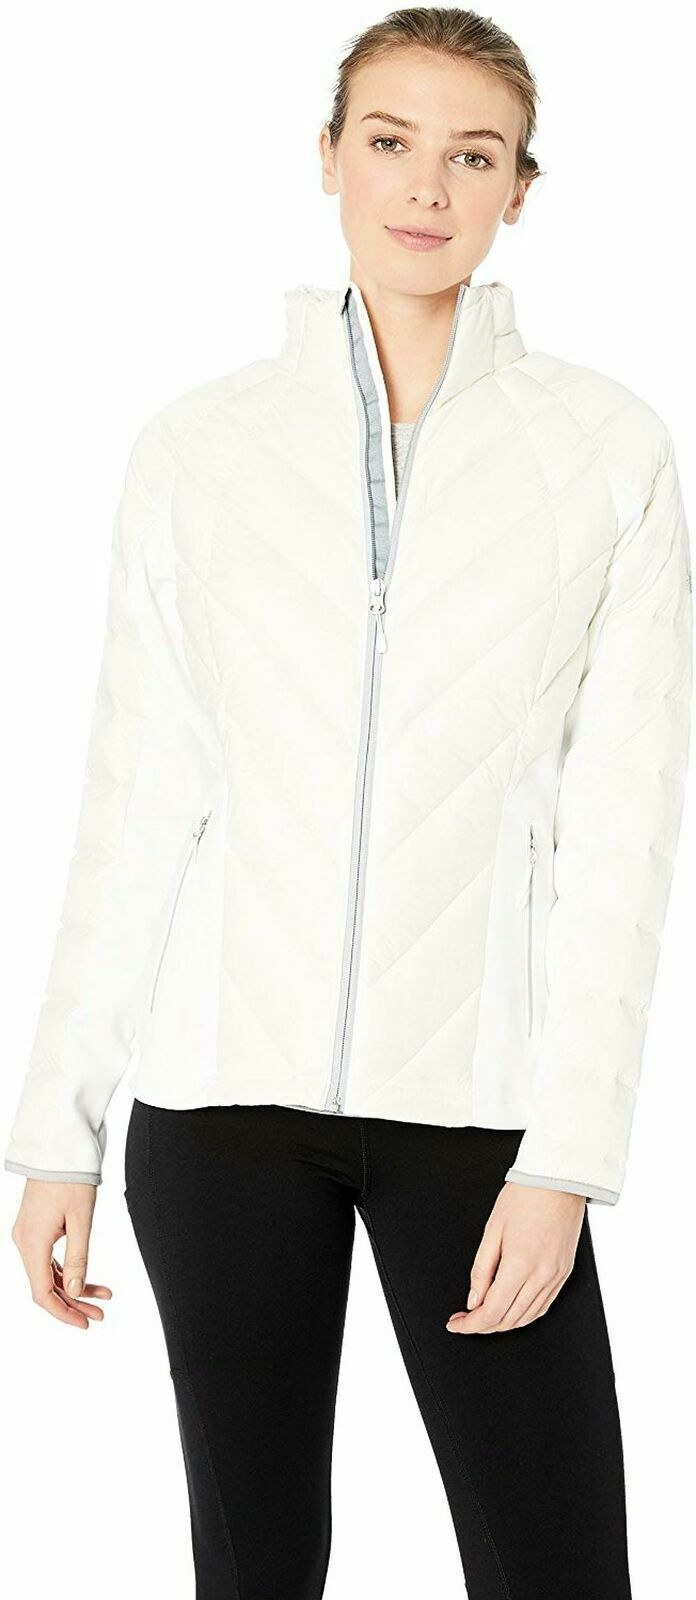 Spyder Women's Syrround DOWN Hybrid Jacket – White/Alloy, Medium Clothing, Shoes & Accessories